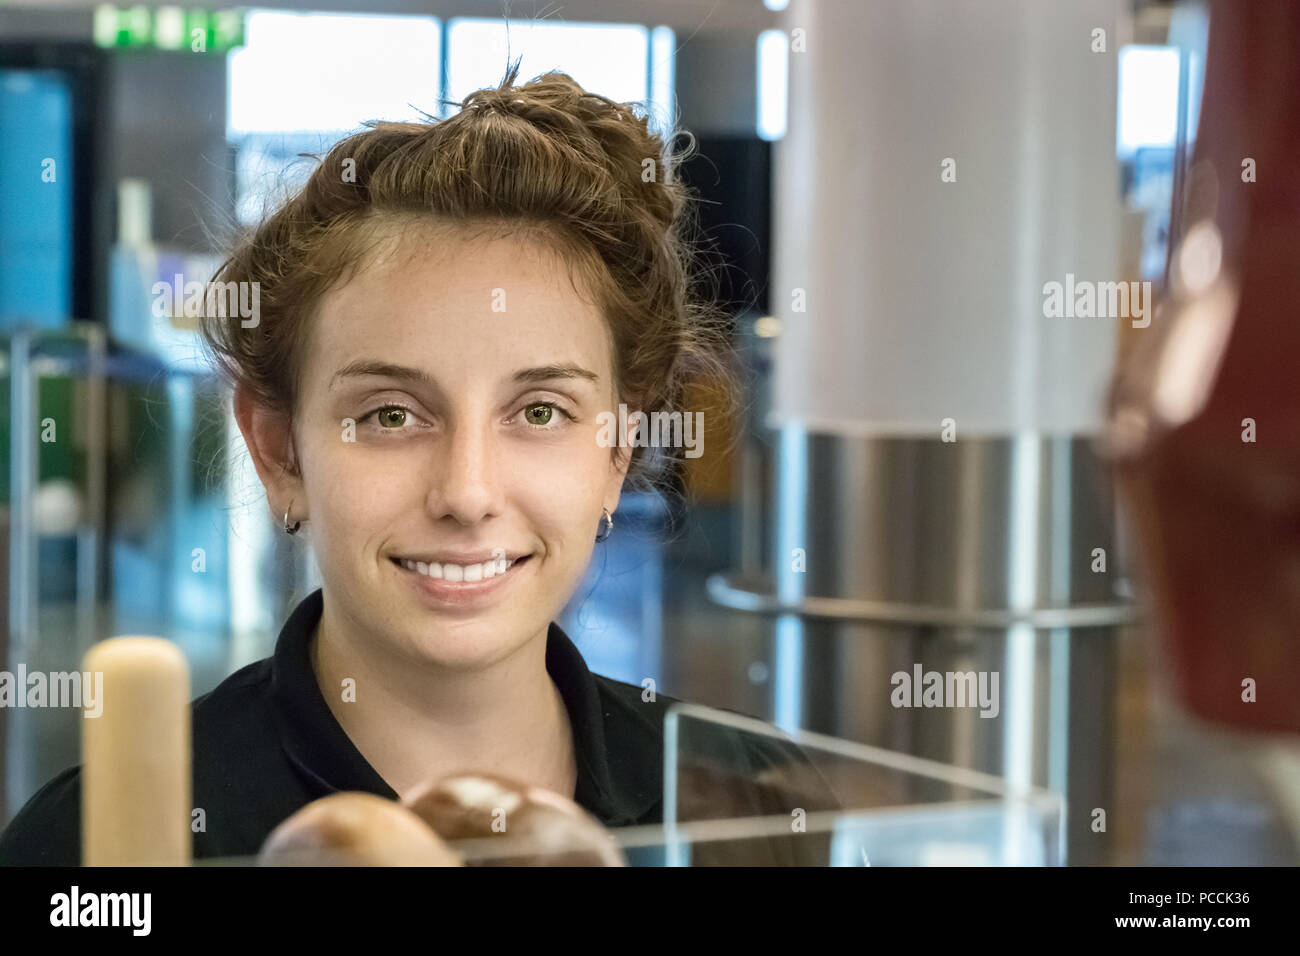 Frankfurt, Germany - July 3th, 2018: A young german woman working at a bakery inside the Frankfurt Airport. - Stock Image